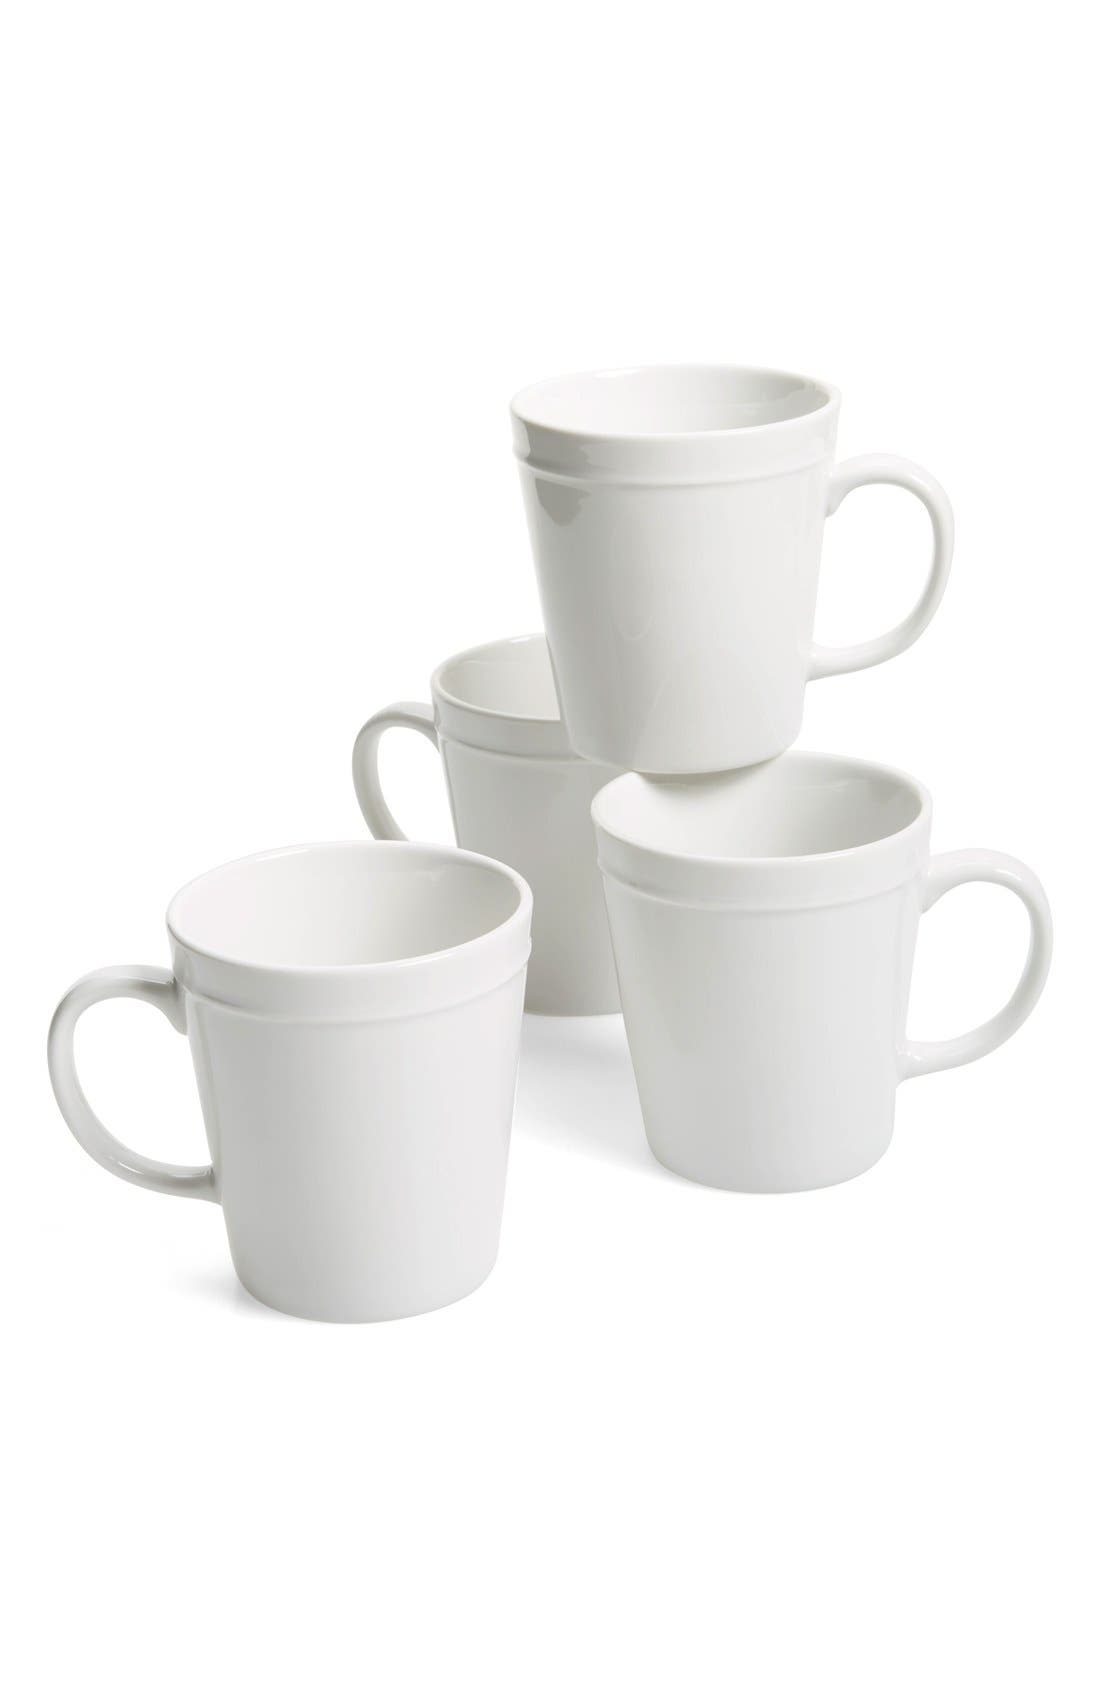 Nordstrom at Home Madrona Set of 4 Coffee Mugs ($32 Value)